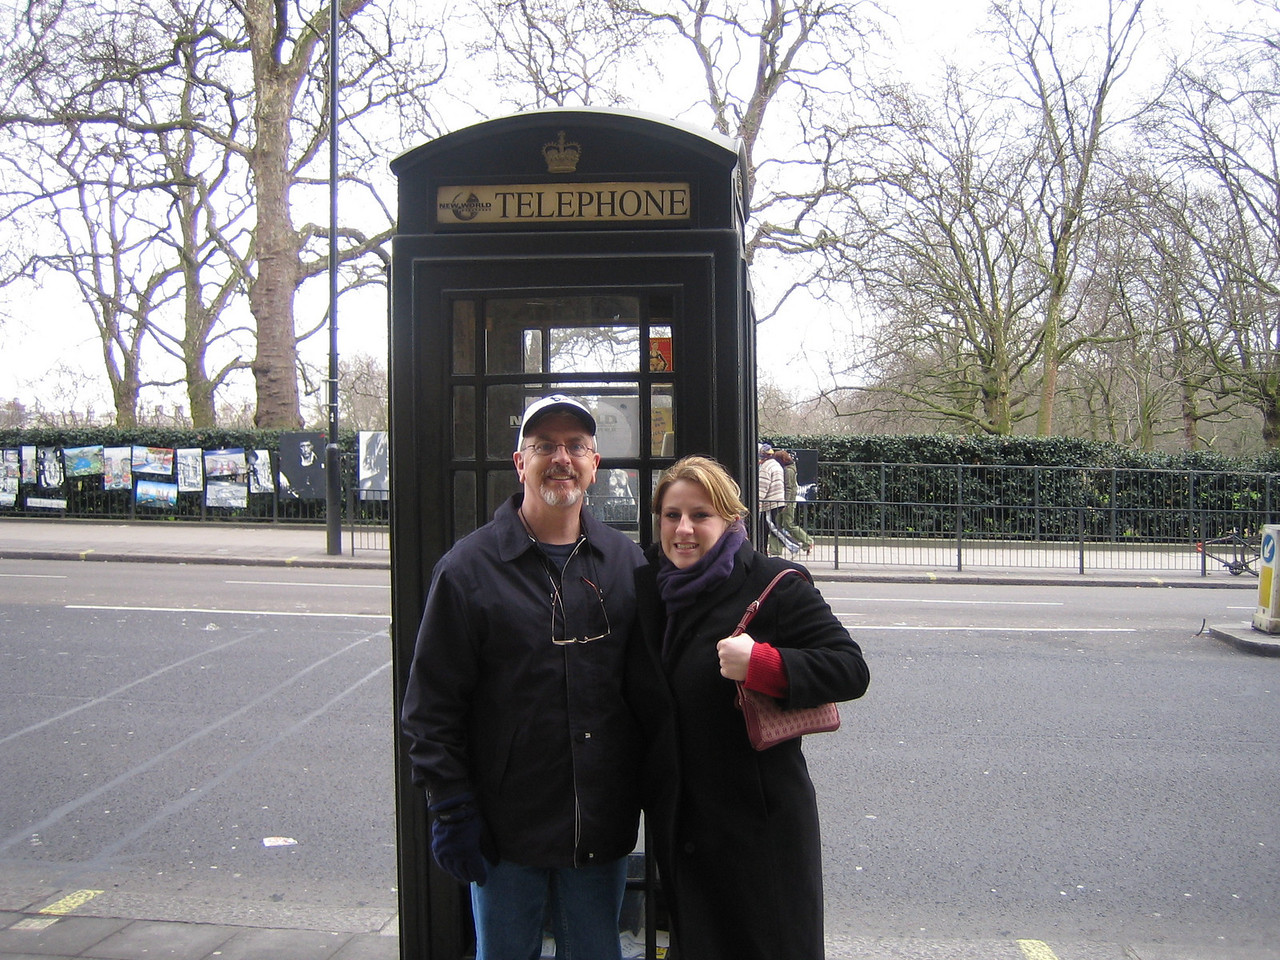 Not the usual red phone box - London City Center - UK<br /> Rick & natalie